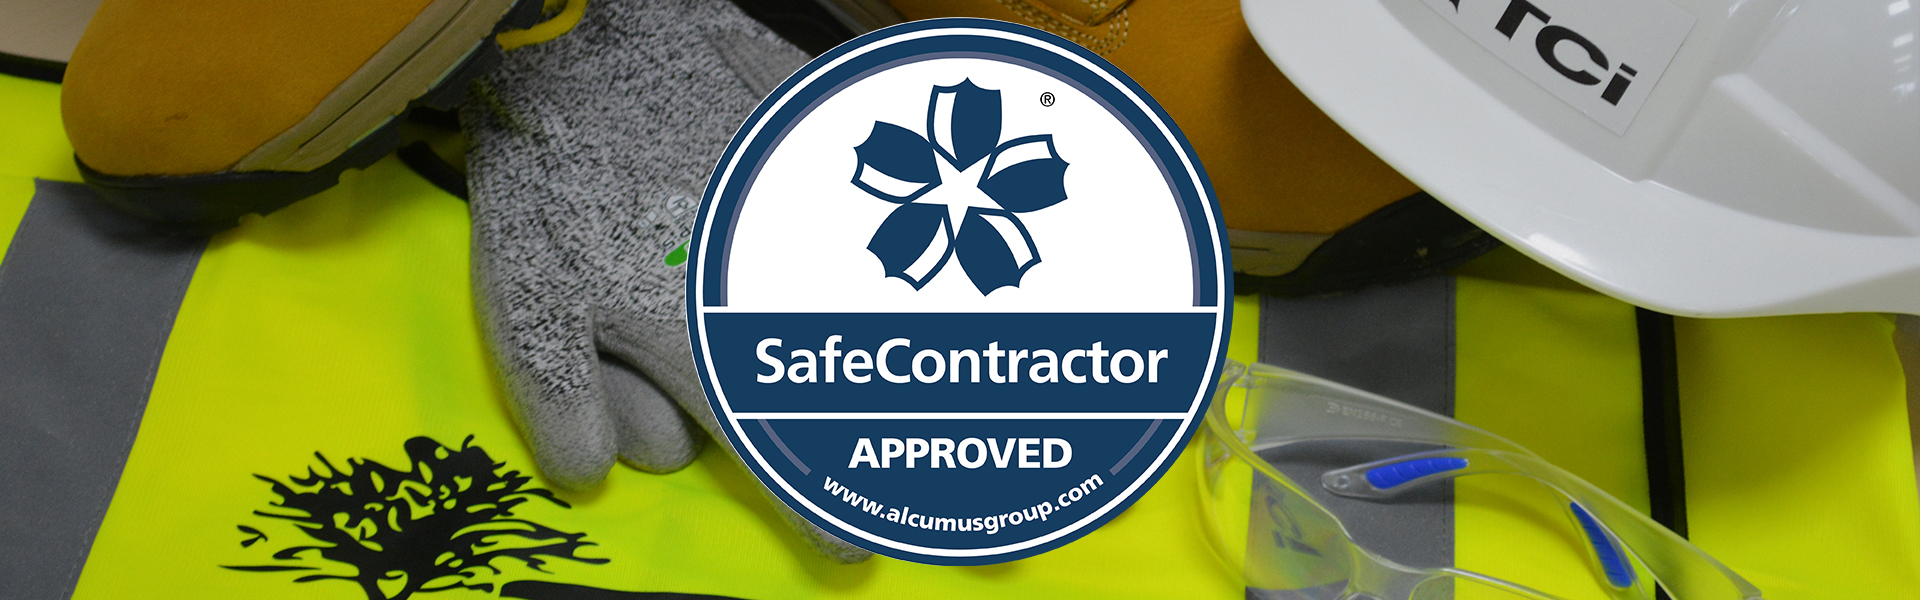 Top Safety Accreditation for TCi